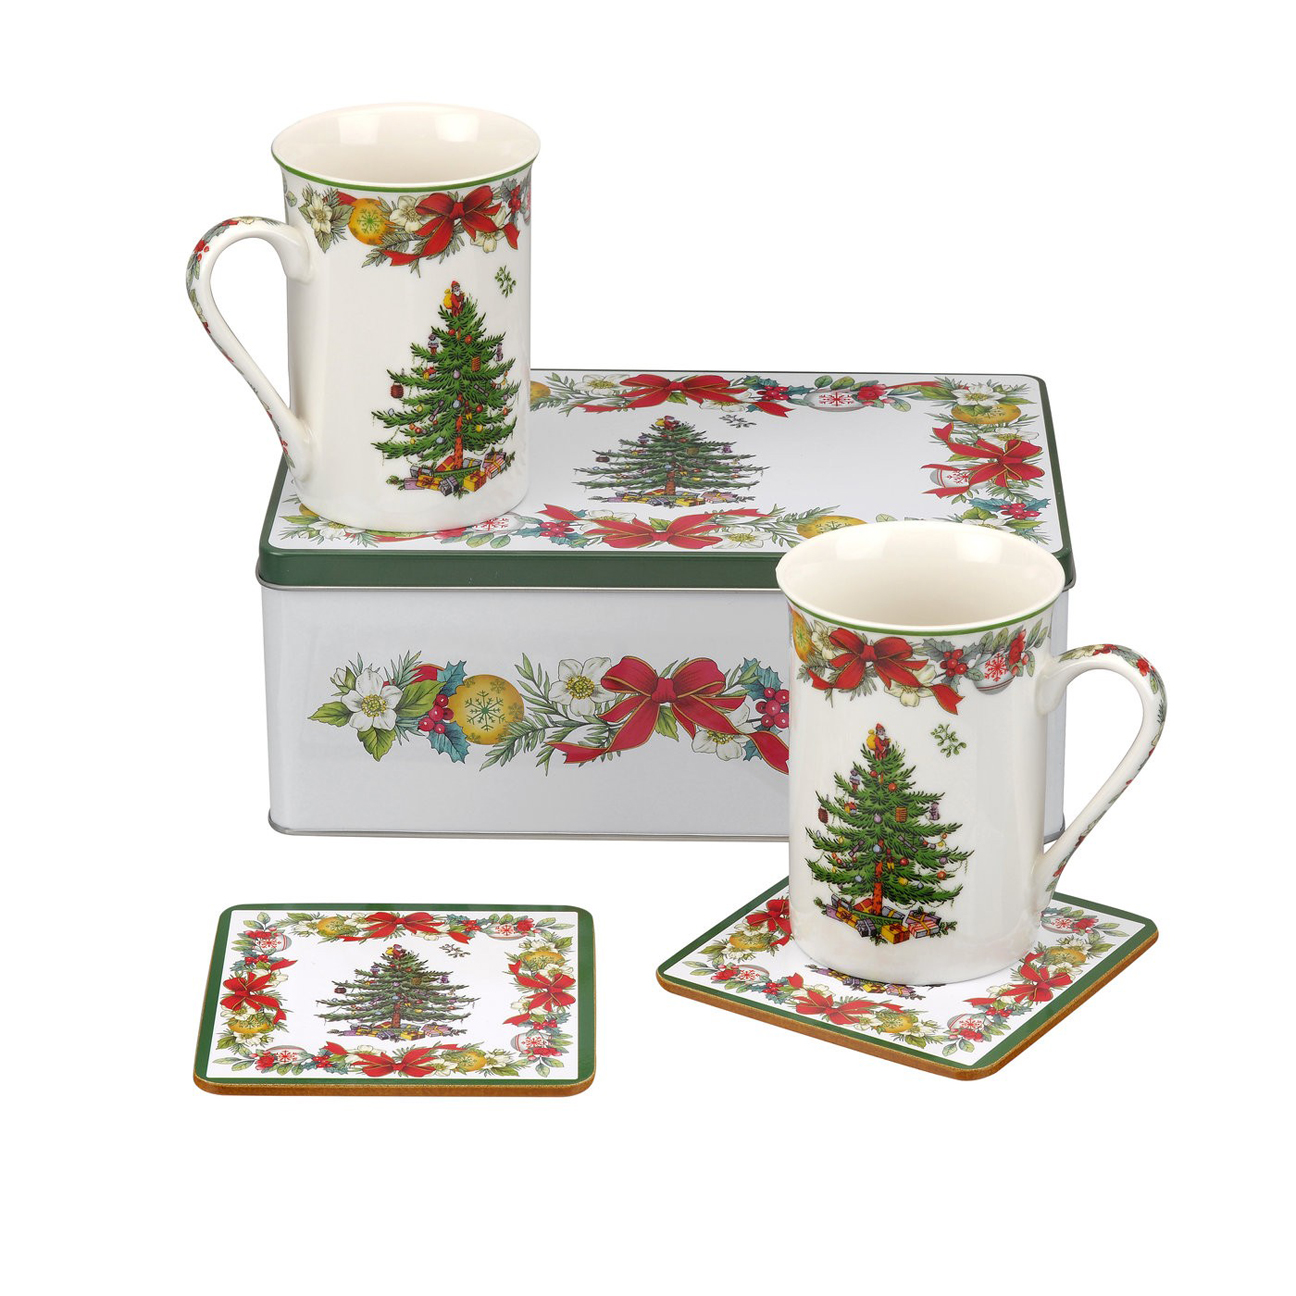 Spode Christmas Tree China Sale: Spode Christmas Tree 5 Piece Tin Set: 2 Mugs, 2 Coasters